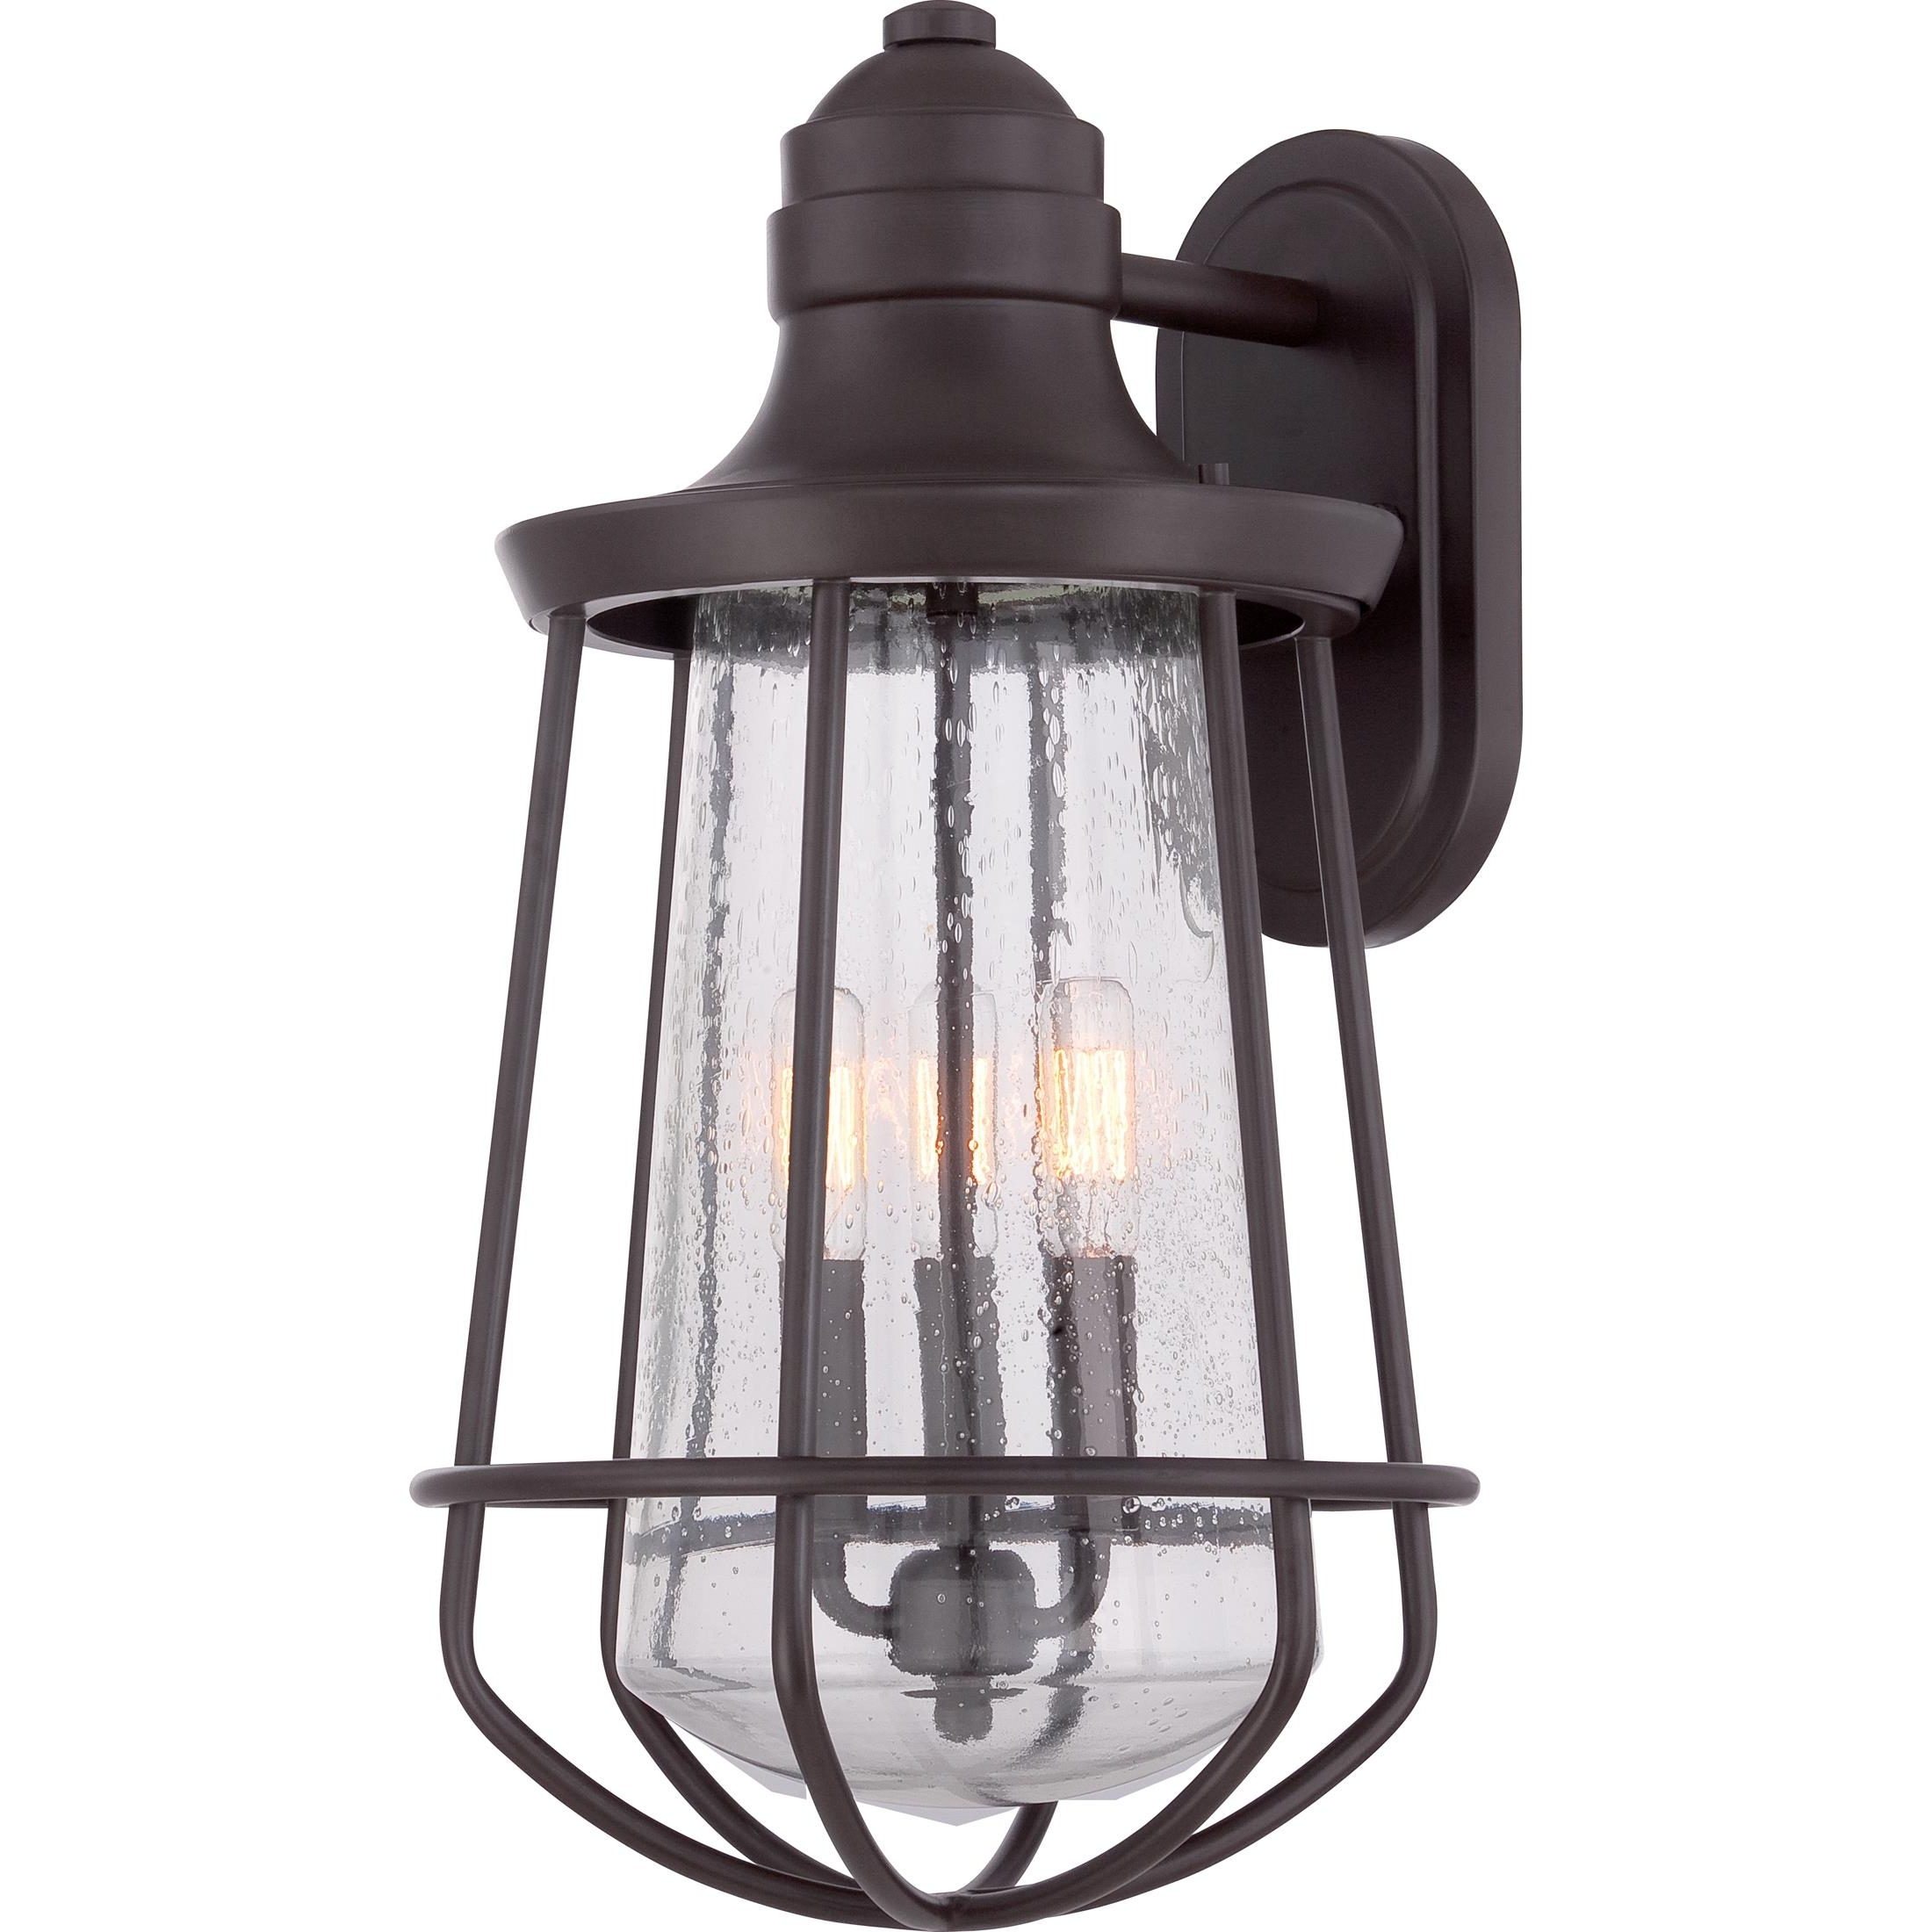 Quoizel Outdoor Lanterns With Regard To Well Liked Quoizel Lighting Mre8410Wt Shipped Direct (View 16 of 20)